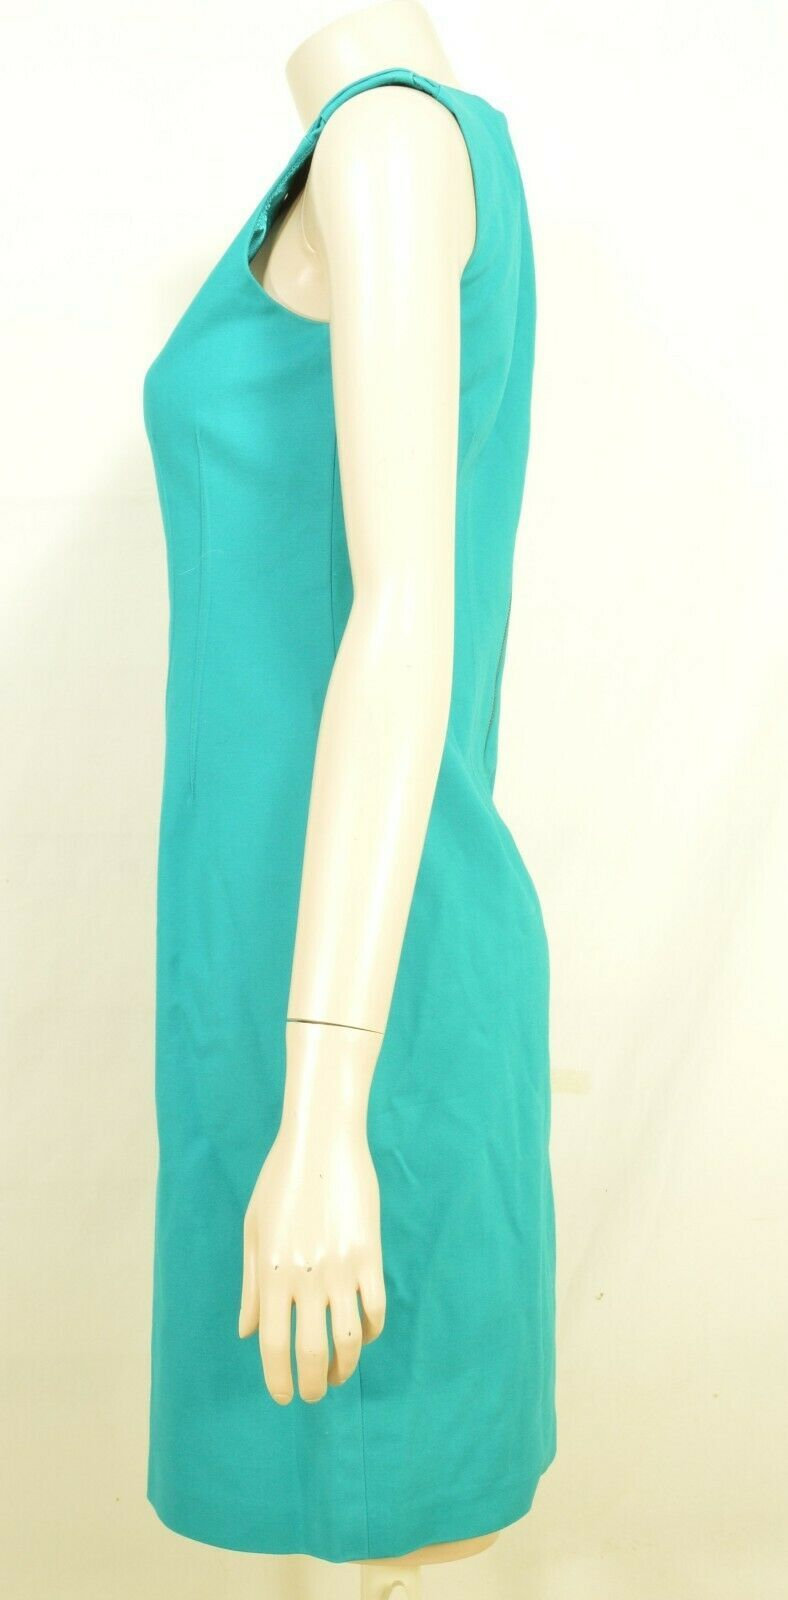 Elie Tahari dress SZ 2 LOT of 2  1 turquoise 1 floral sheath career chic lined image 8